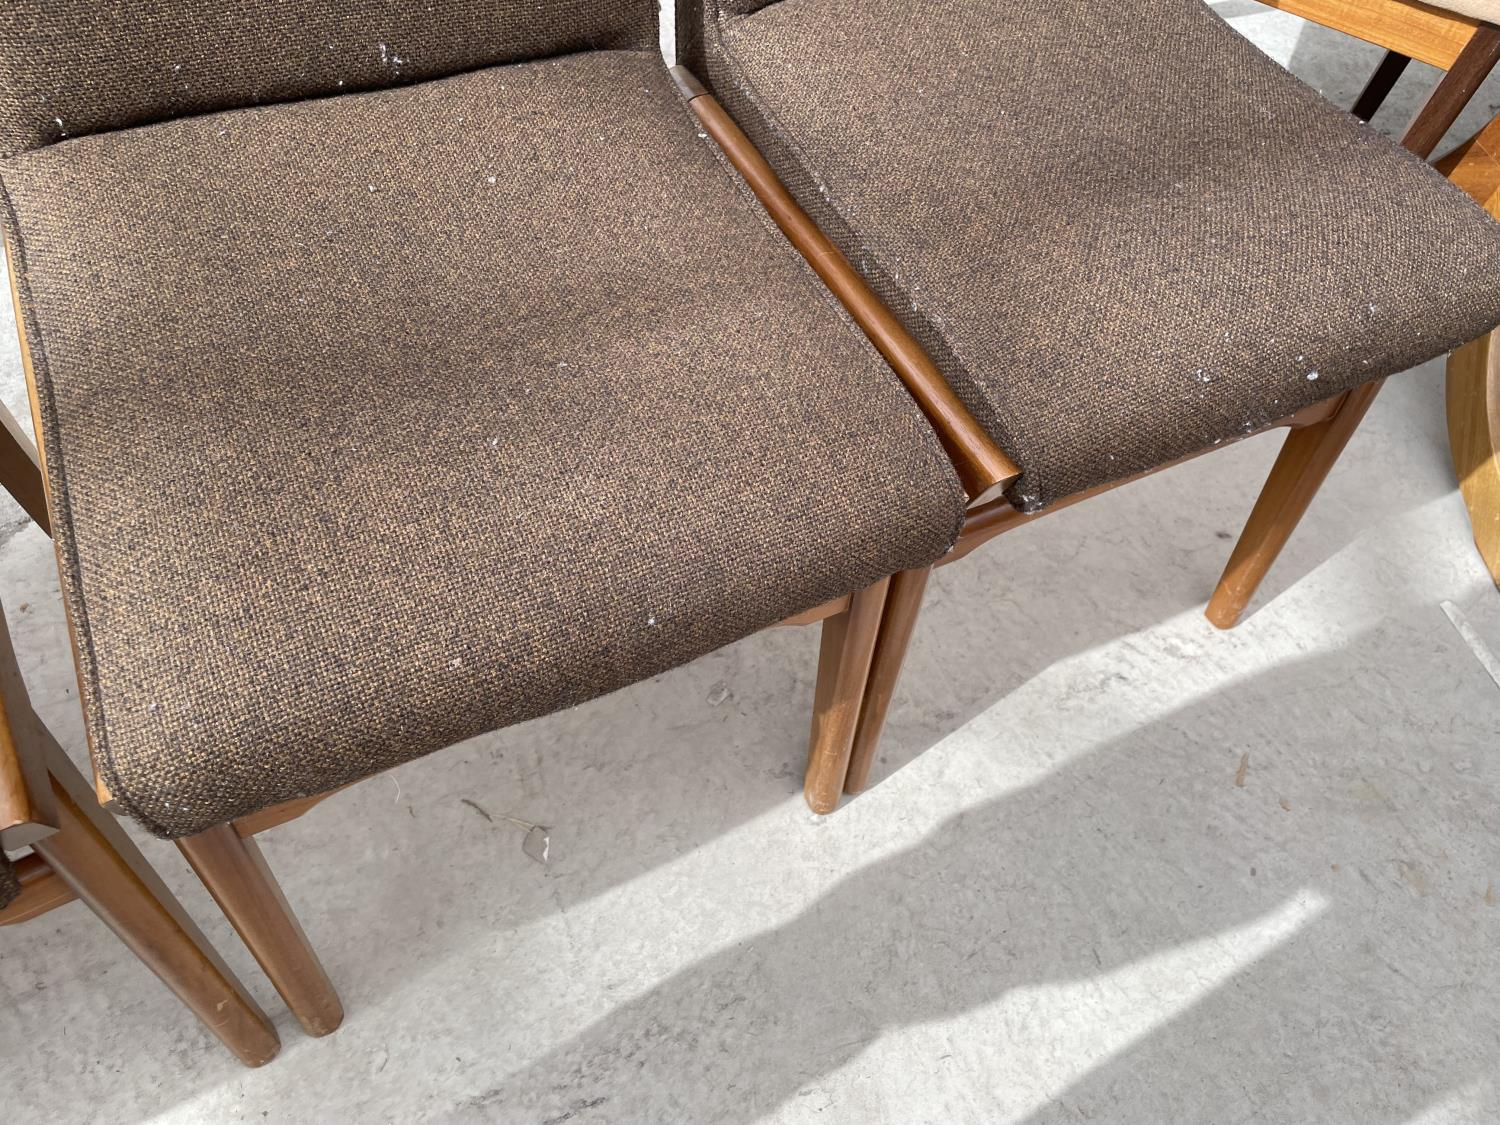 A SET OF SIX RETRO DINING CHAIRS WITH UPHOLSTERED BACKS AND SEATS - Image 7 of 8